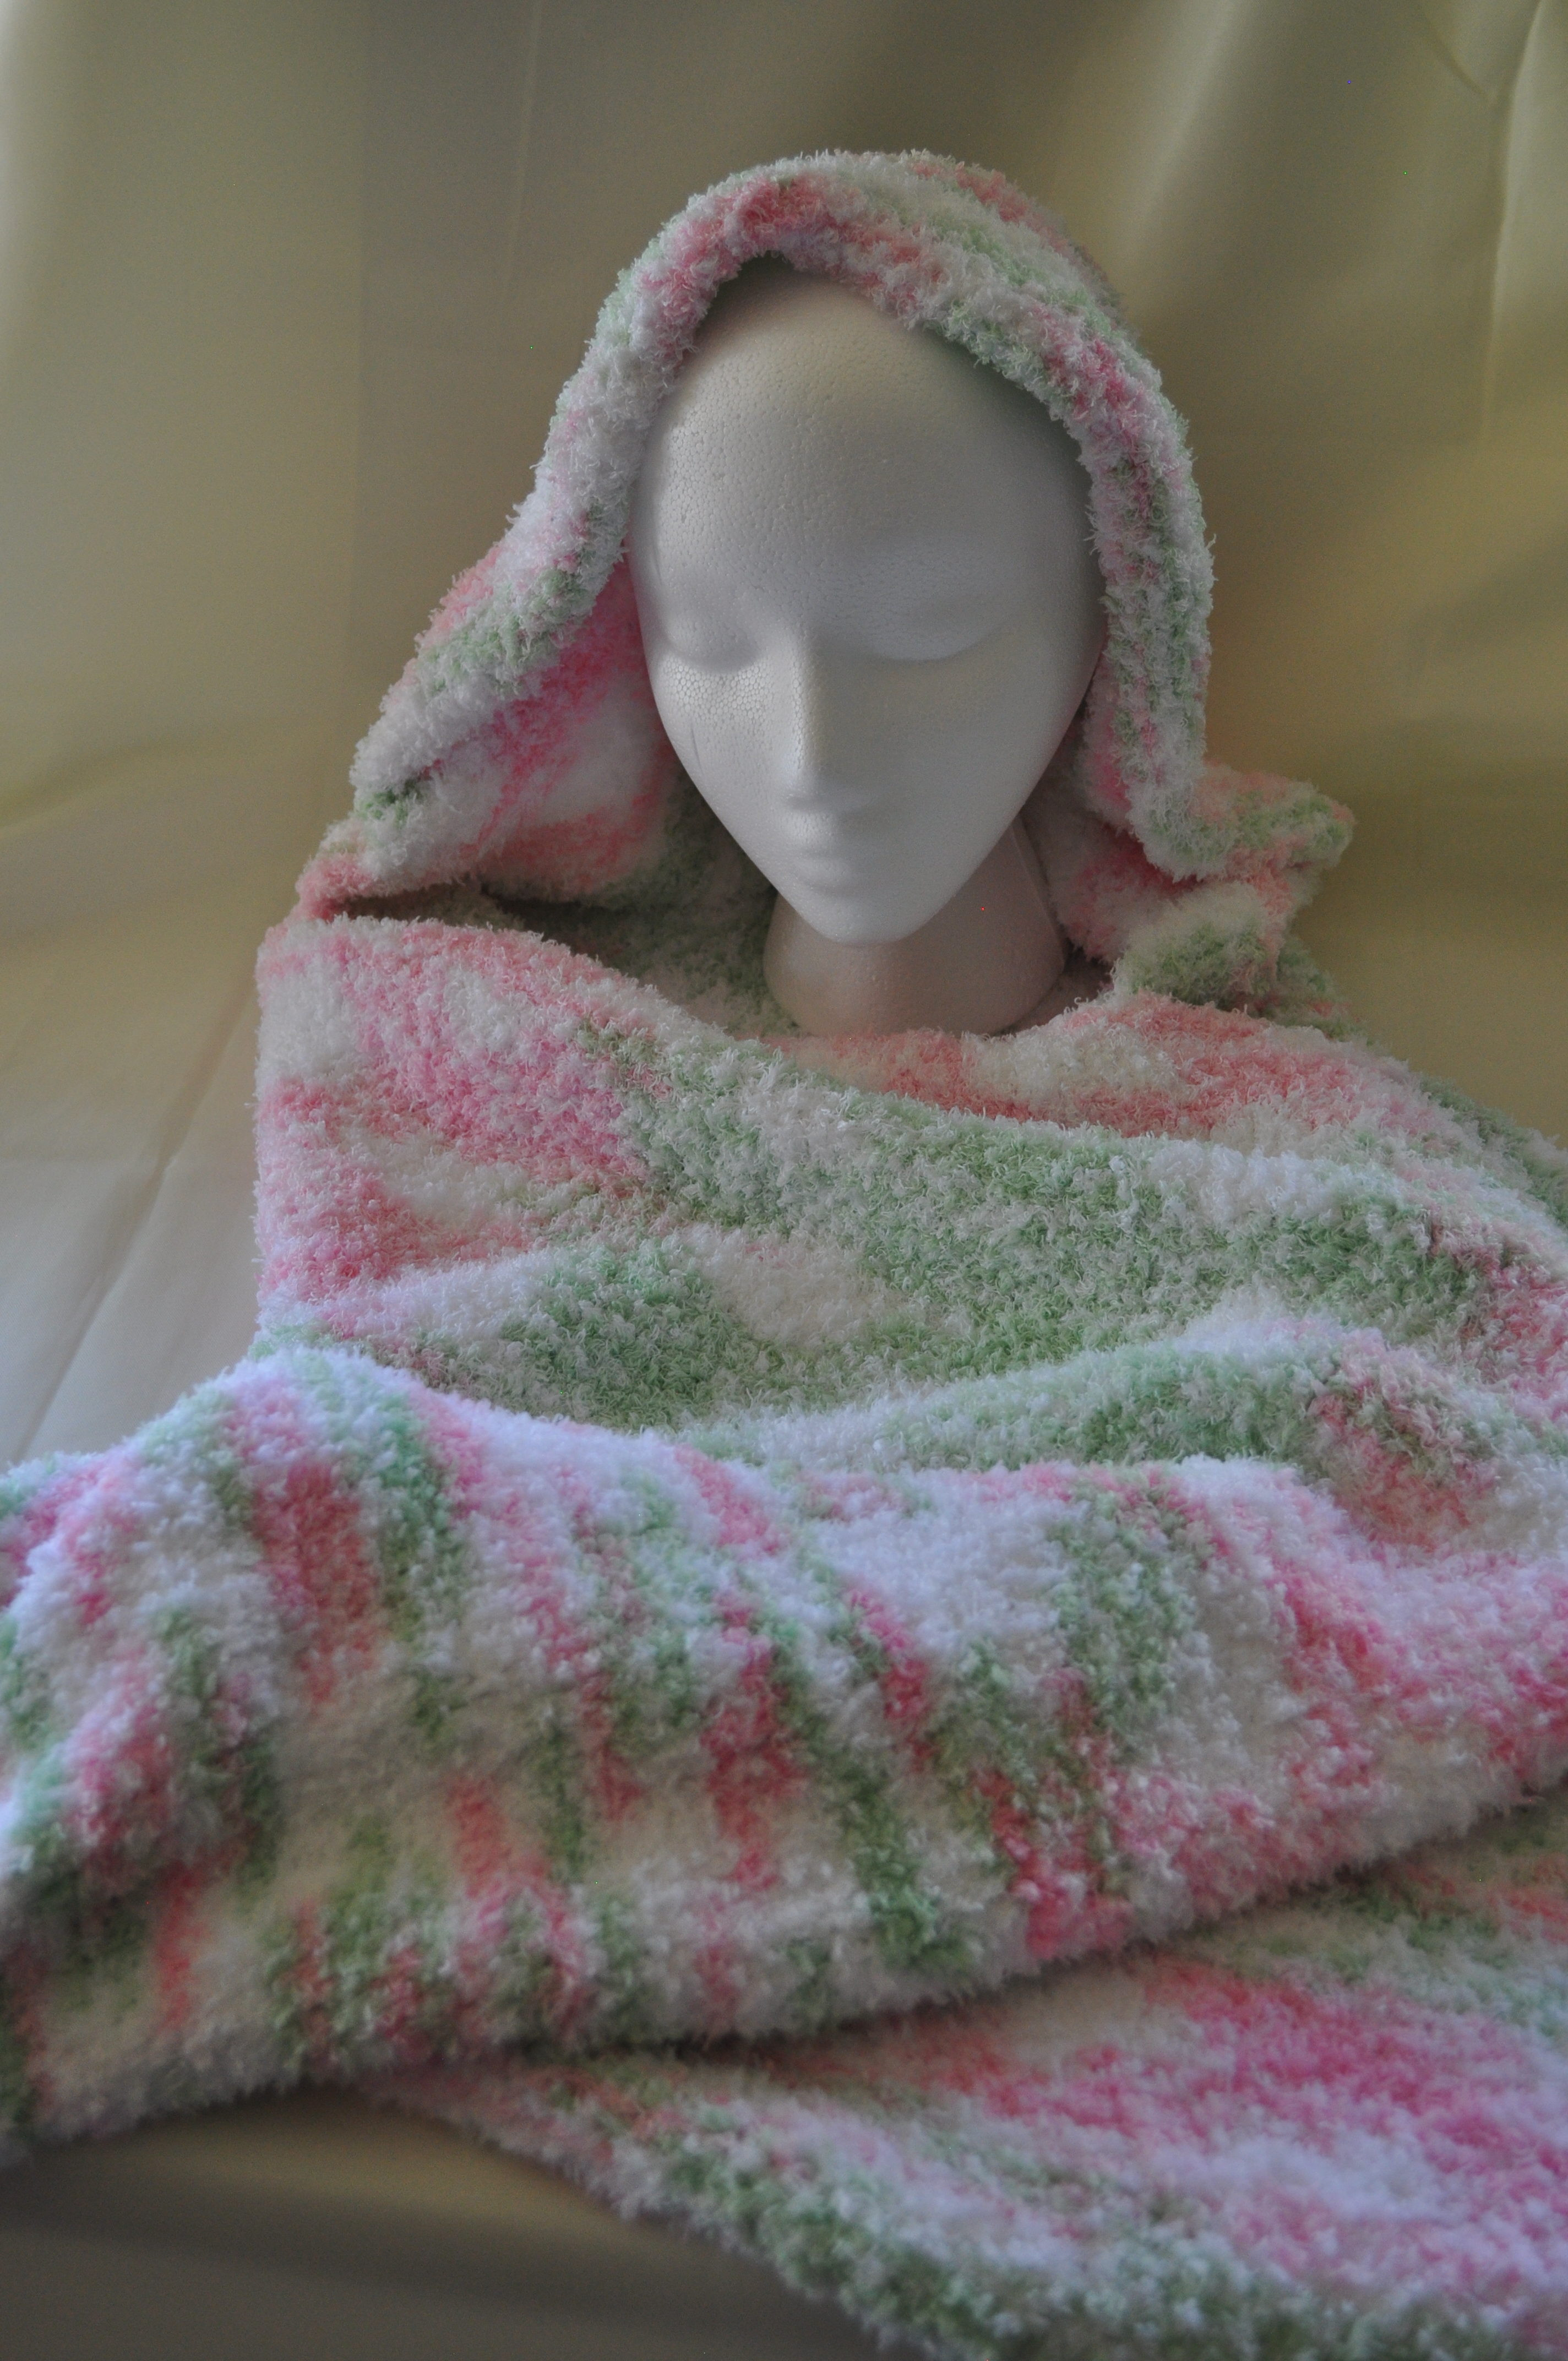 Hooded Baby Blanket Inspirational Knitted Hooded Baby Blanket – Mas Knits and Gifts Of Contemporary 45 Ideas Hooded Baby Blanket